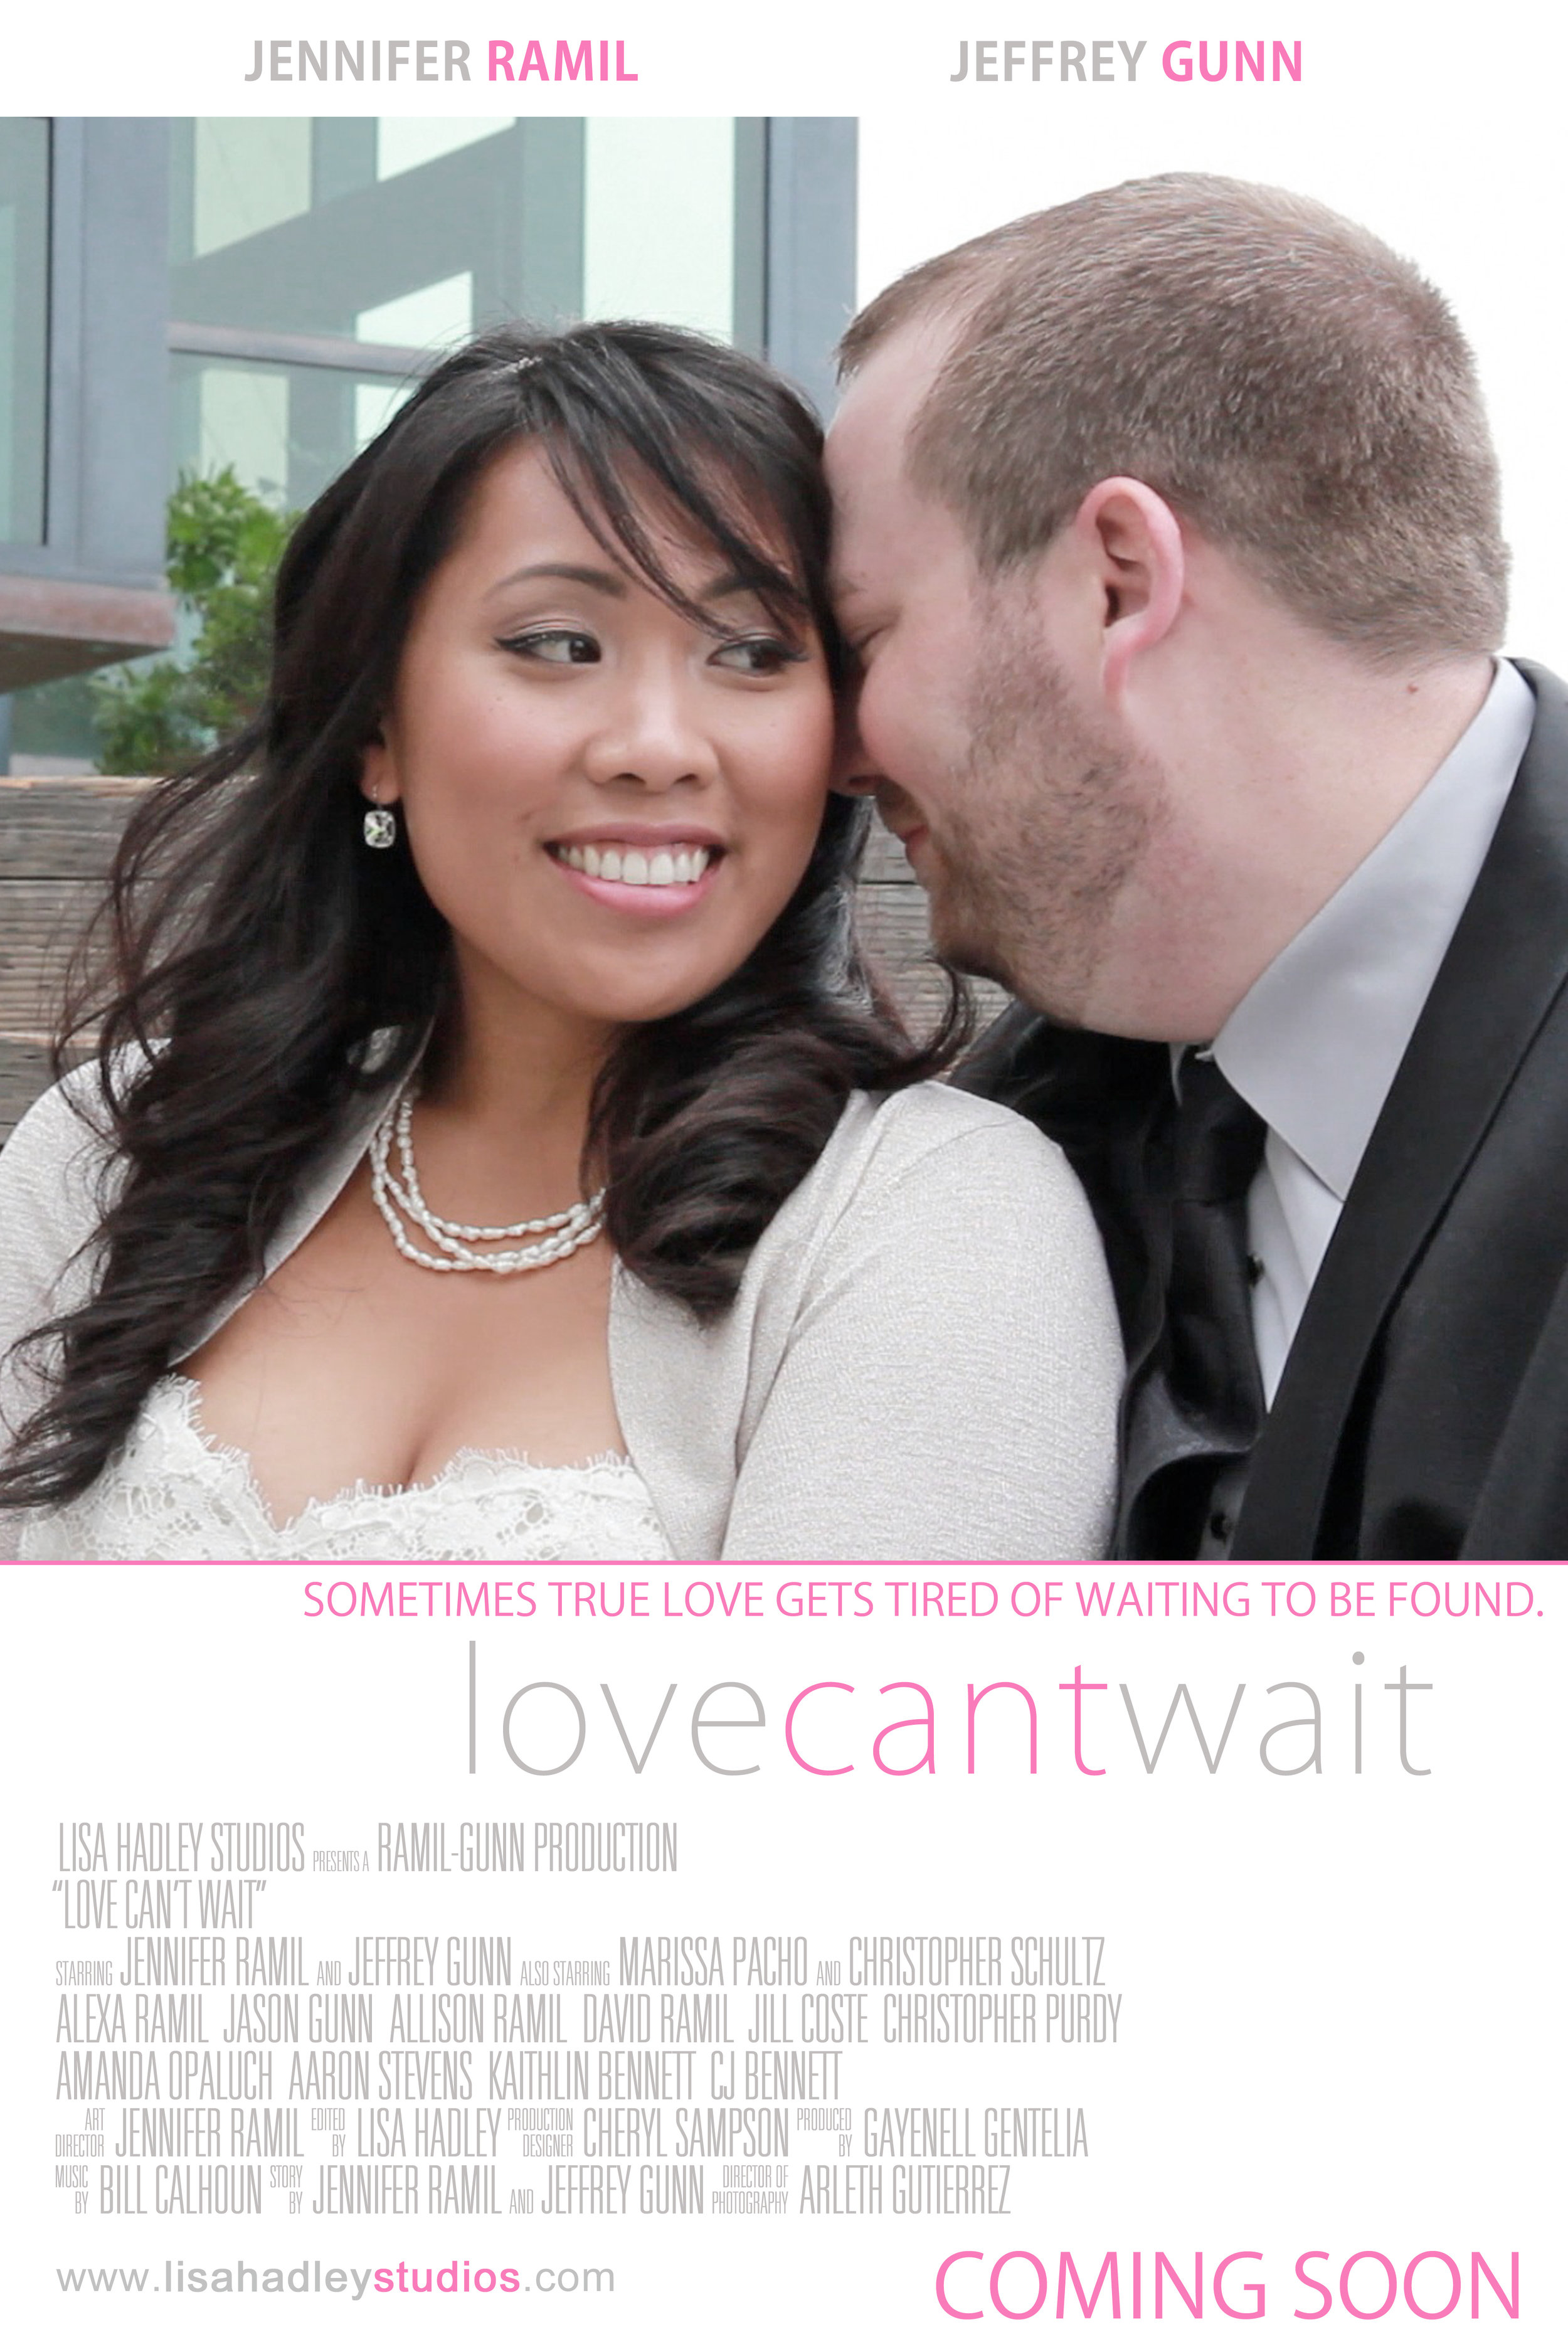 LOVE CANT WAIT POSTER